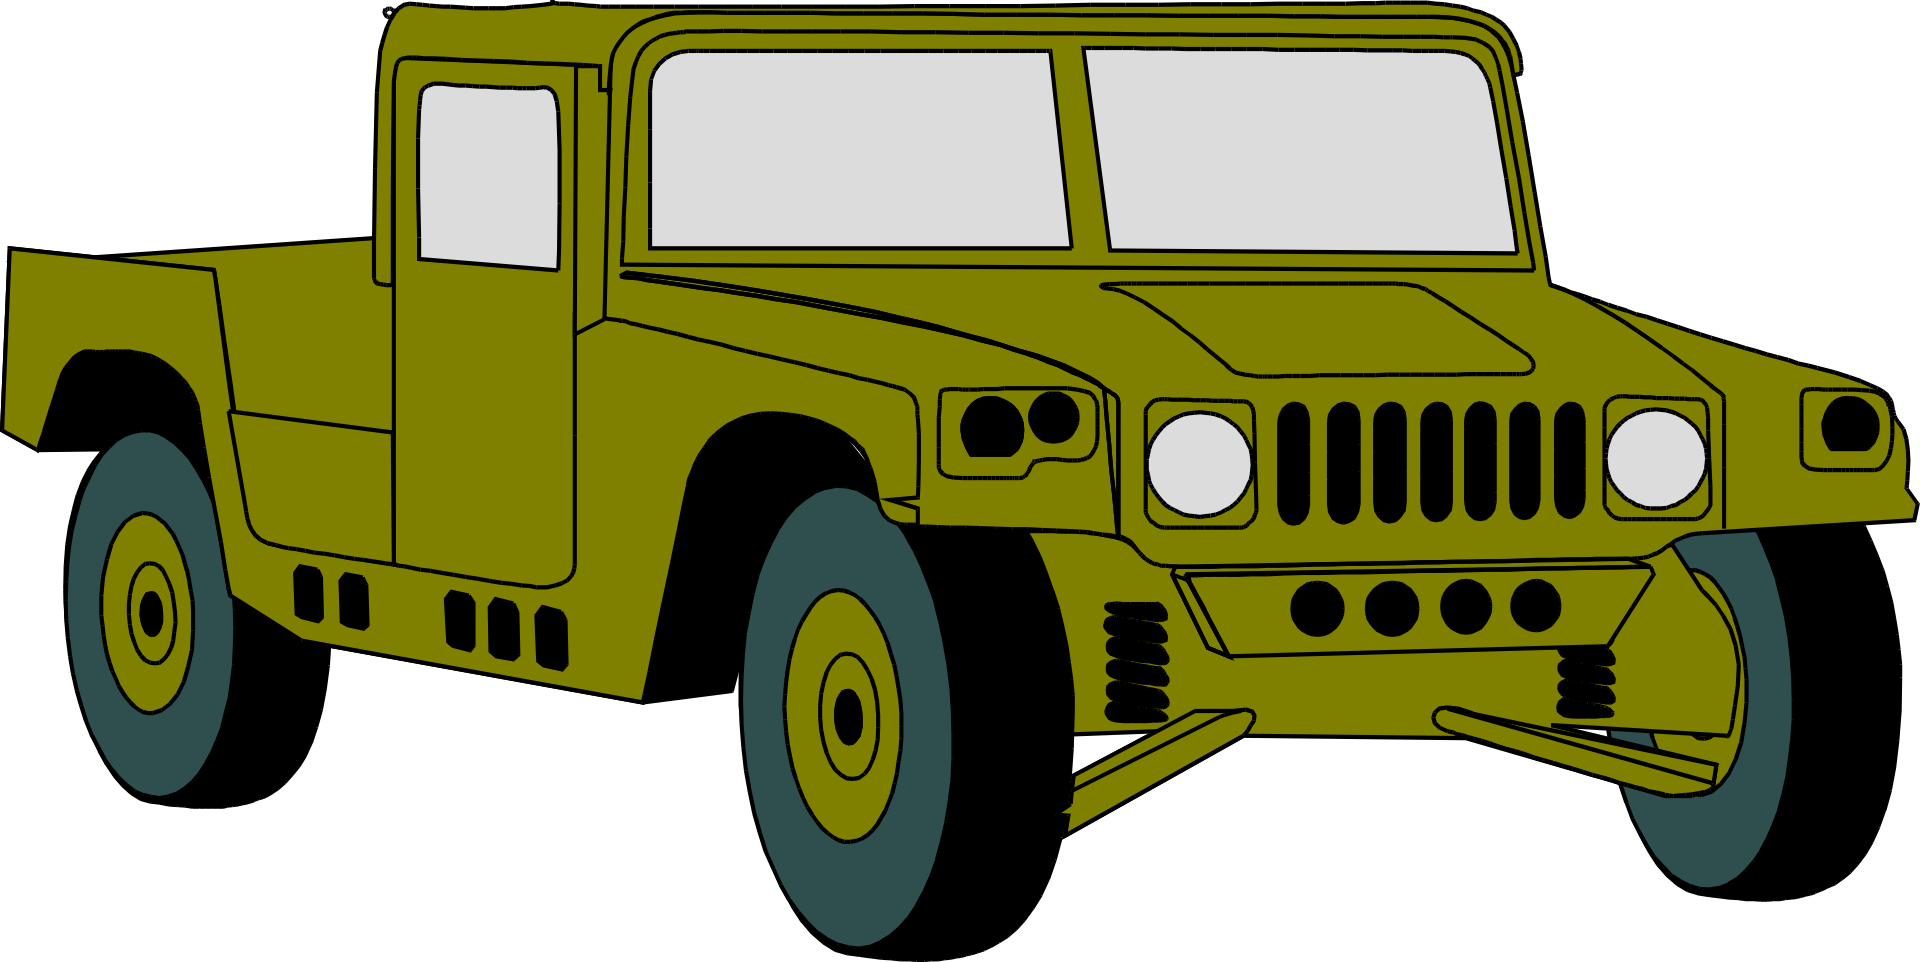 Military clipart jeep army. Humvee hummer vehicle clip